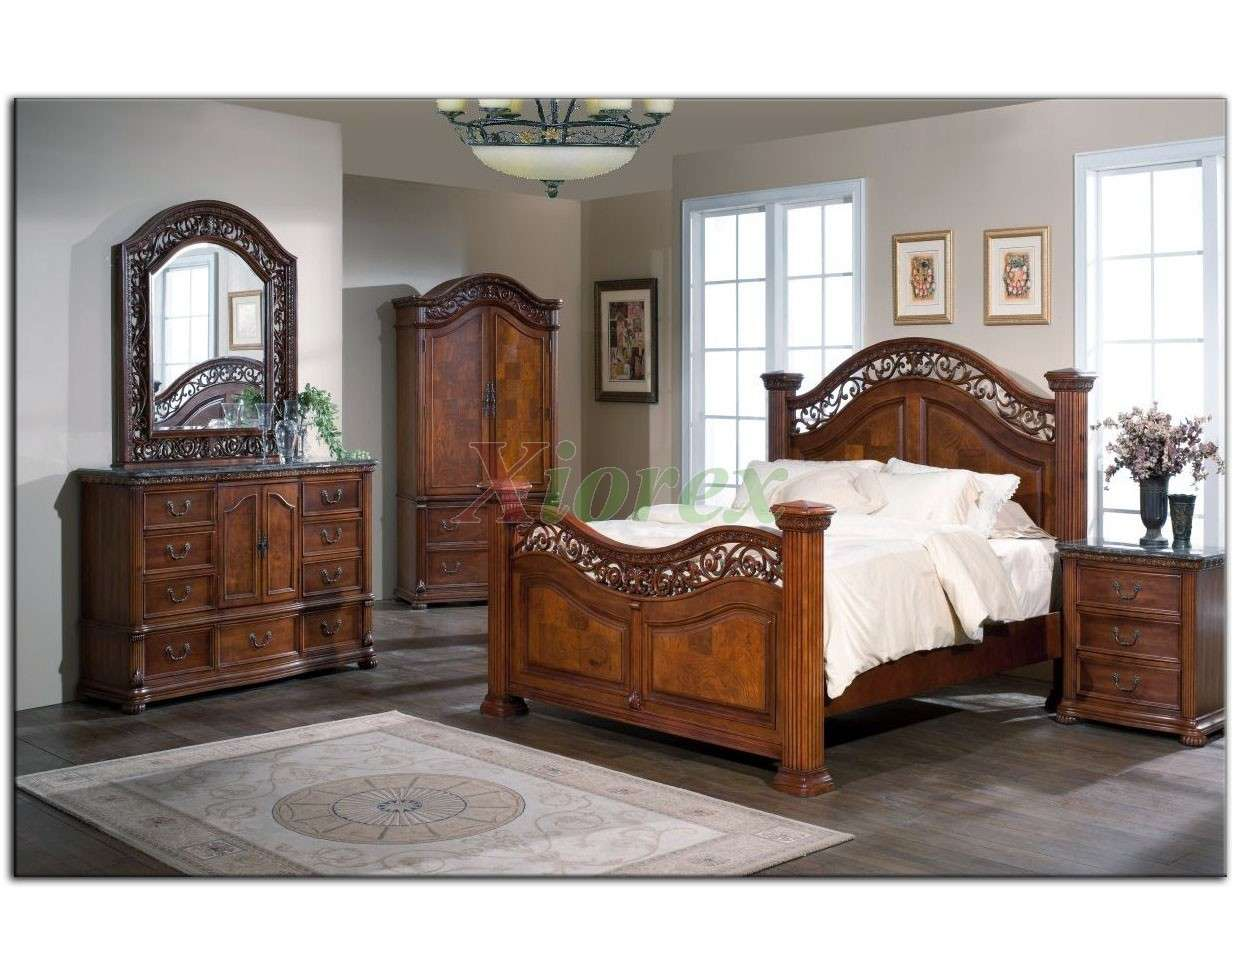 Ideal Bedroom Furniture Set Home Decor Decors Inspirated